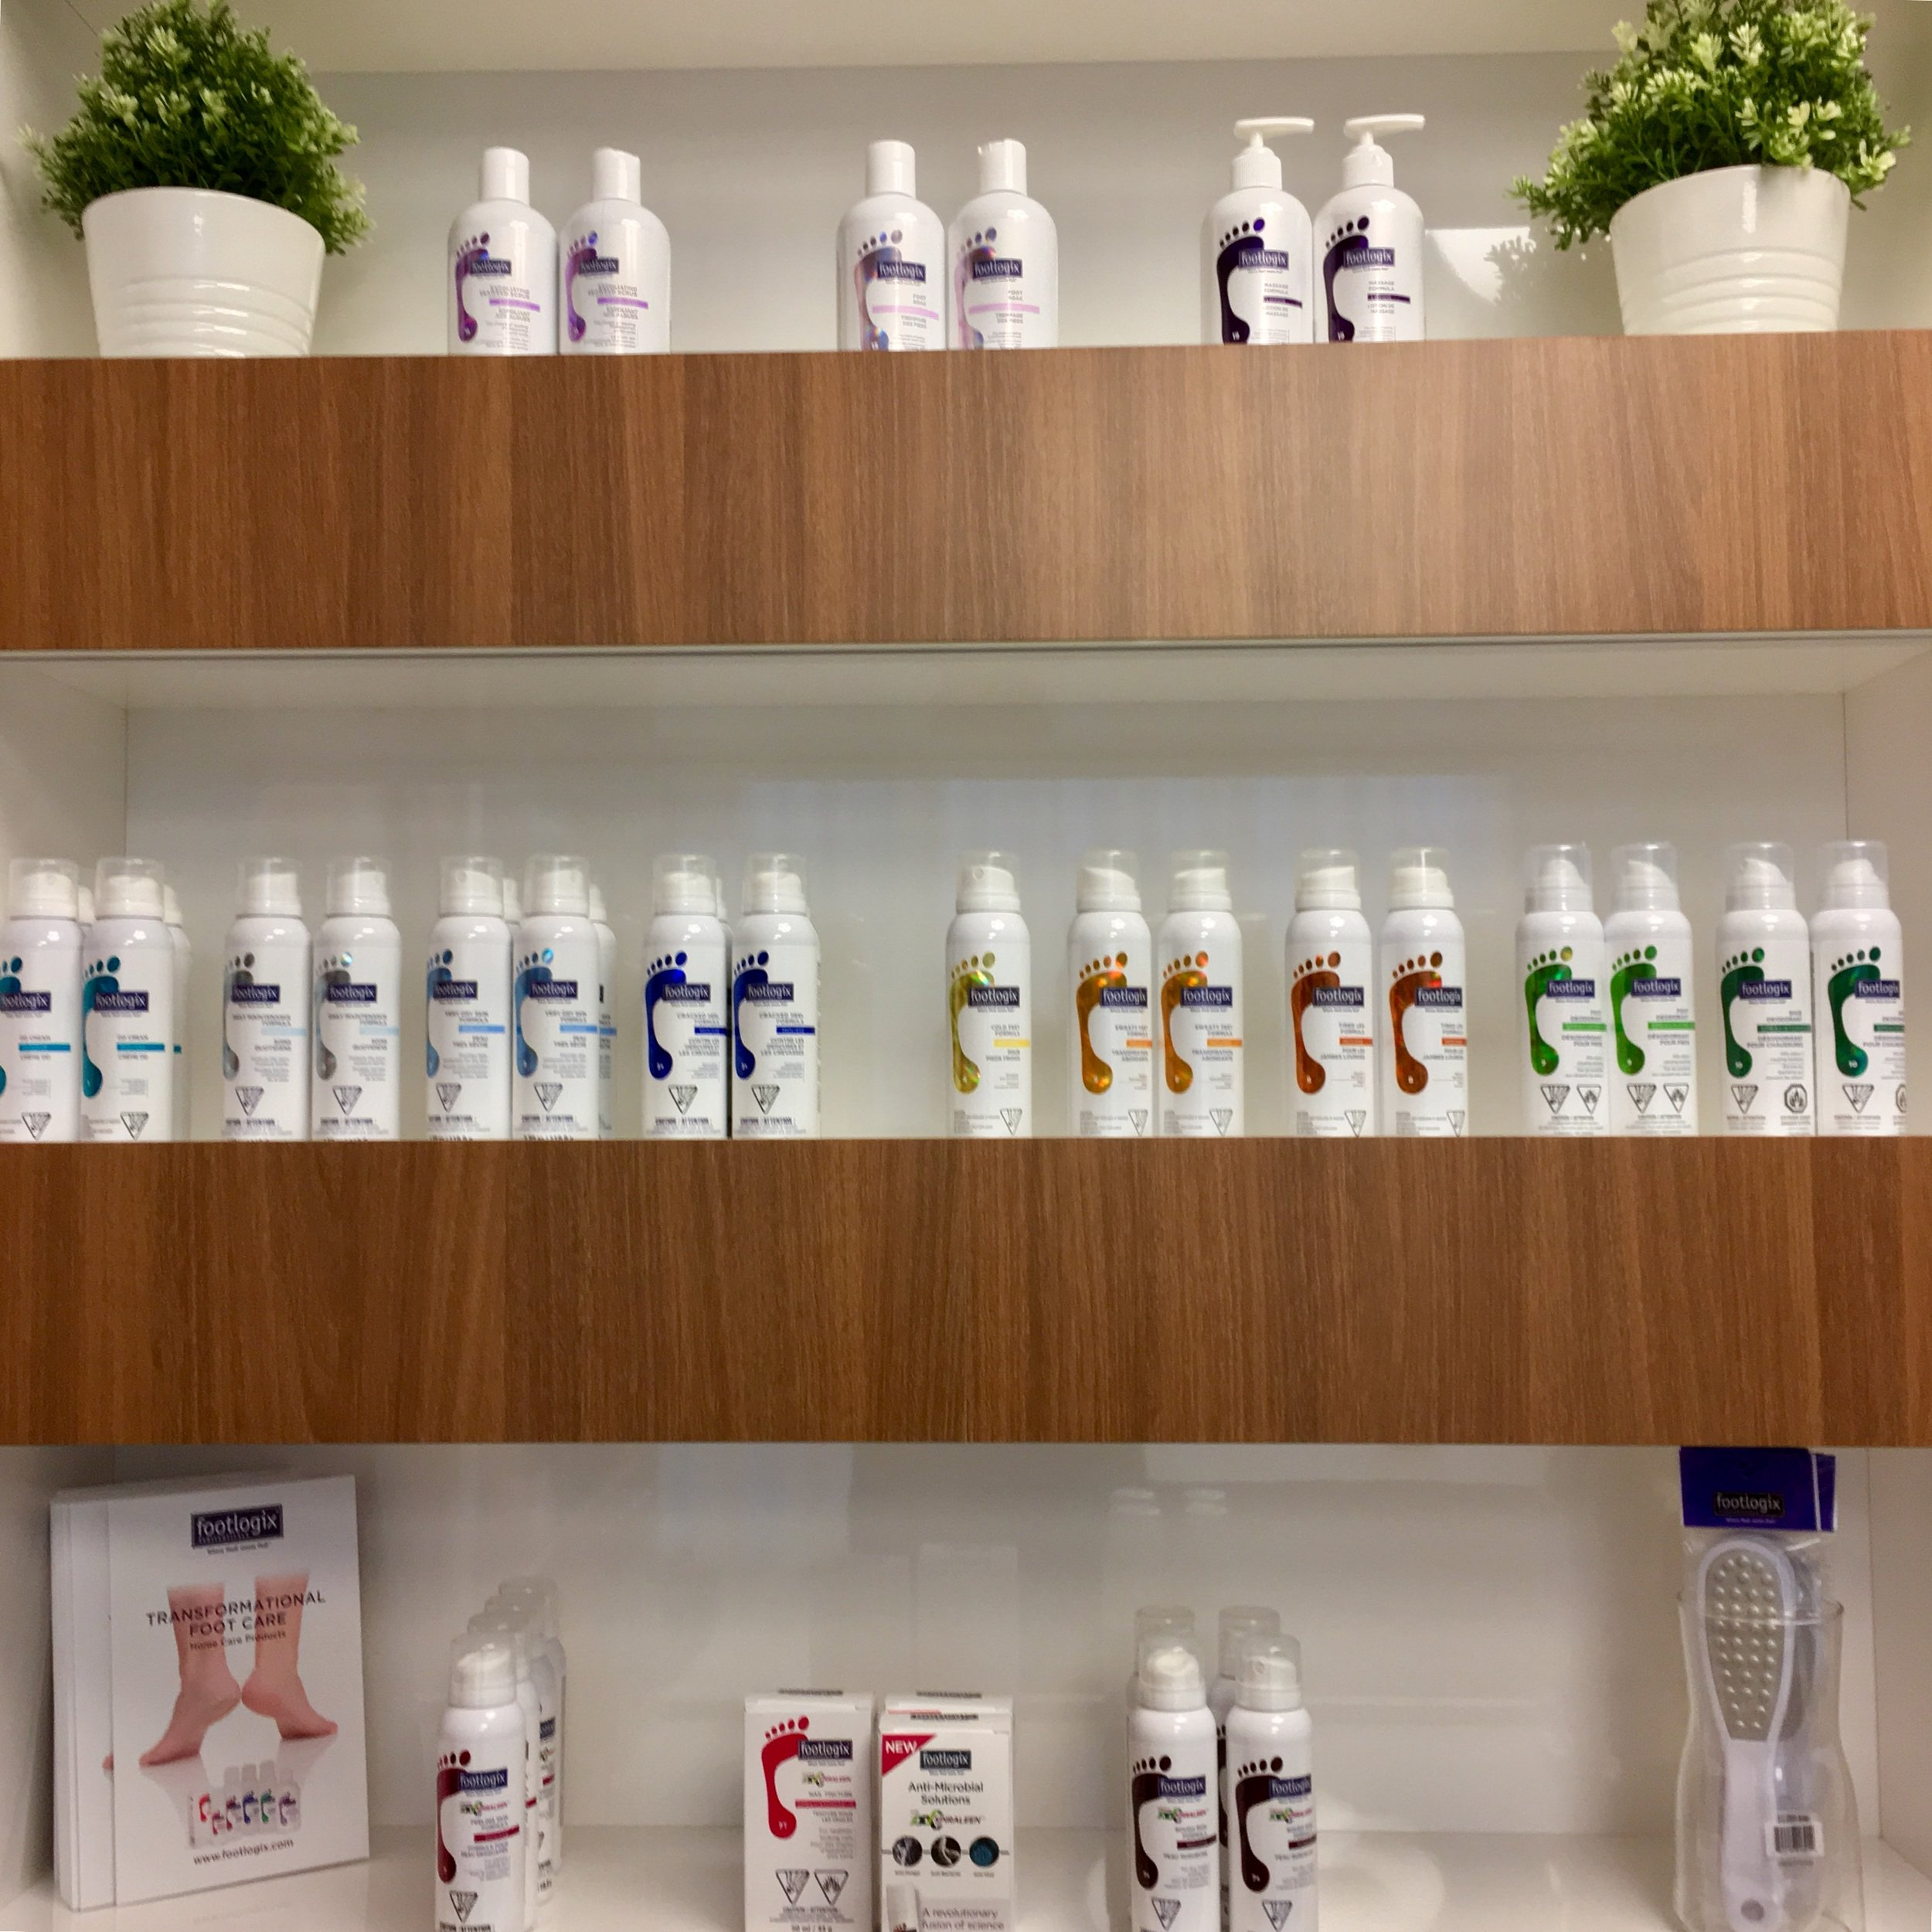 HydroPeptide Product Line at Portland Street Spa